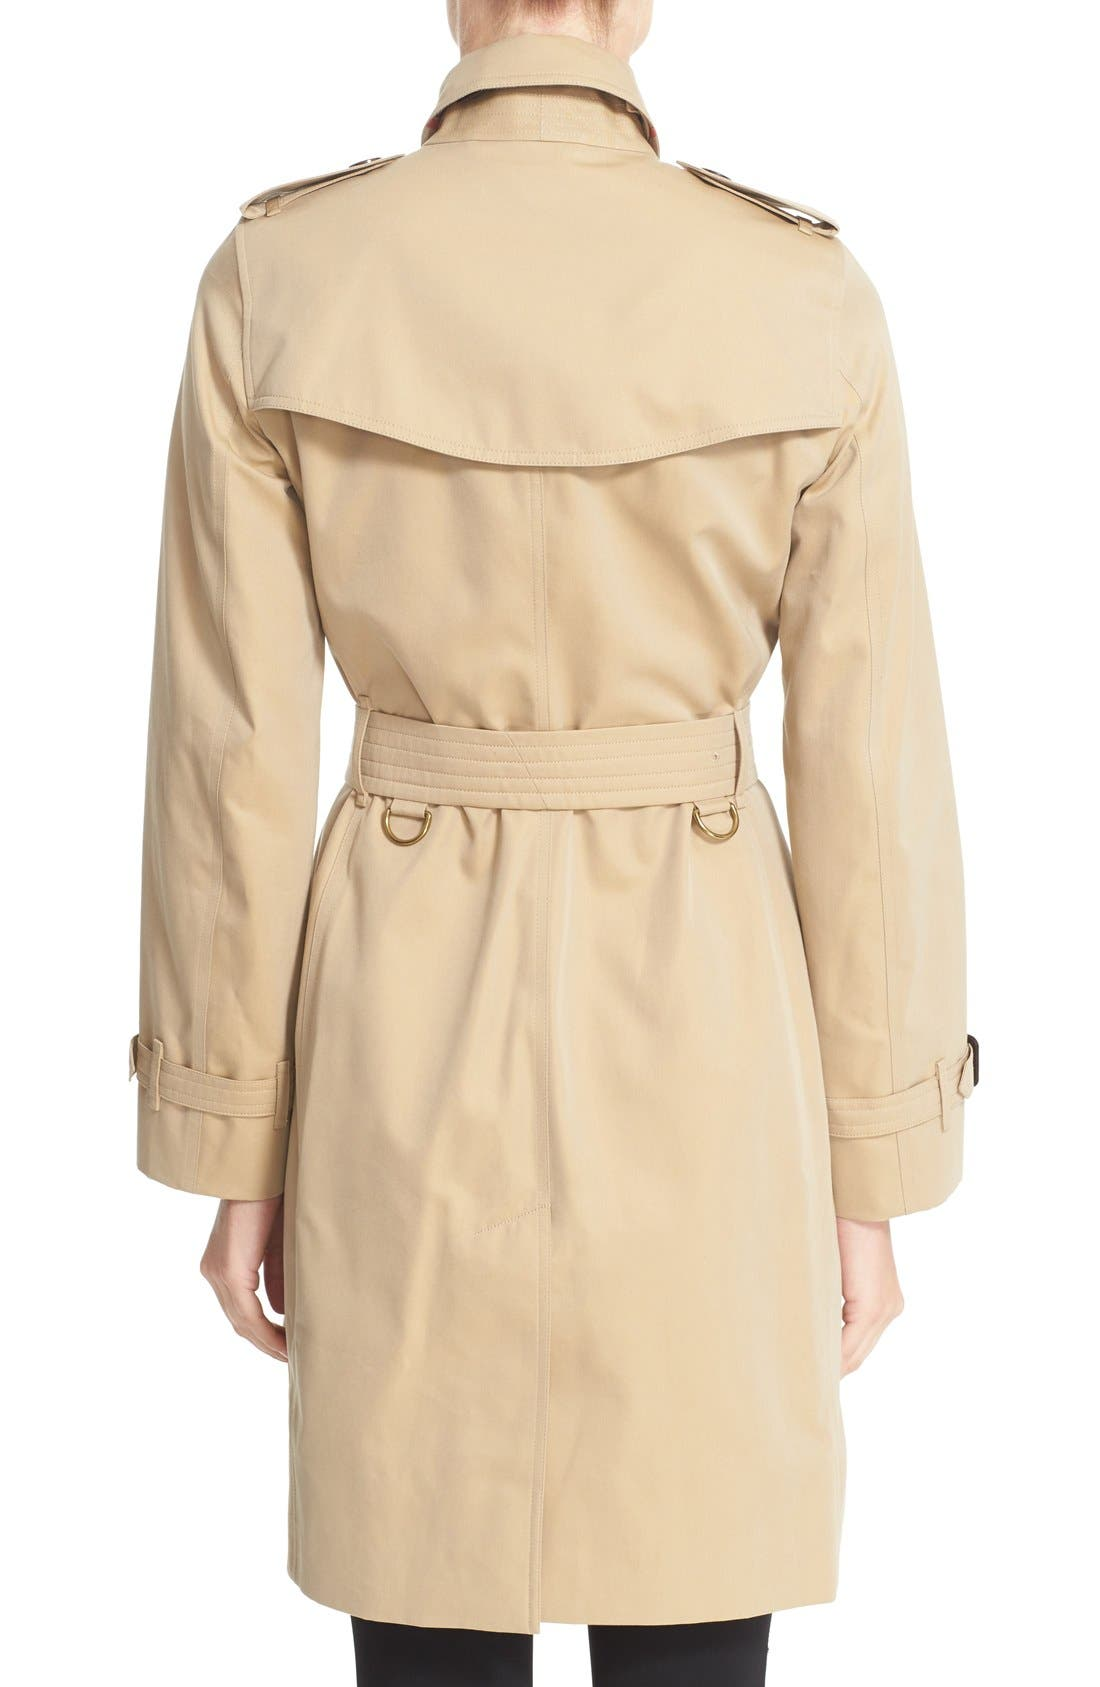 Kensington Long Trench Coat,                             Alternate thumbnail 2, color,                             HONEY